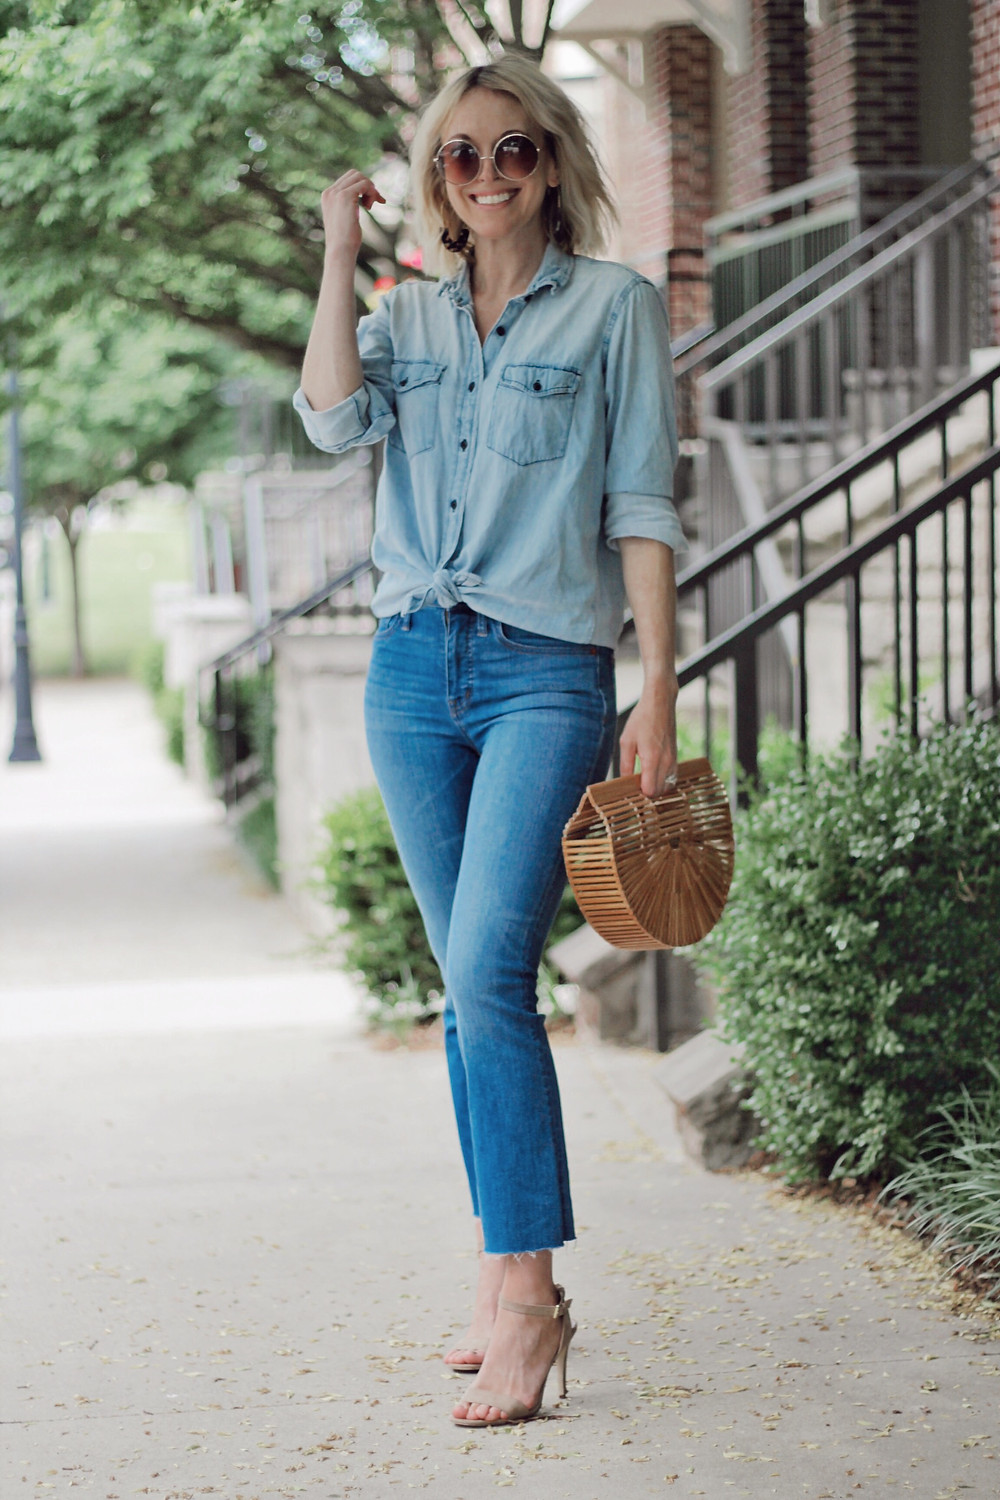 Women wears spring outfit of blue chambray shirt, cropped jeans, wooden bag.